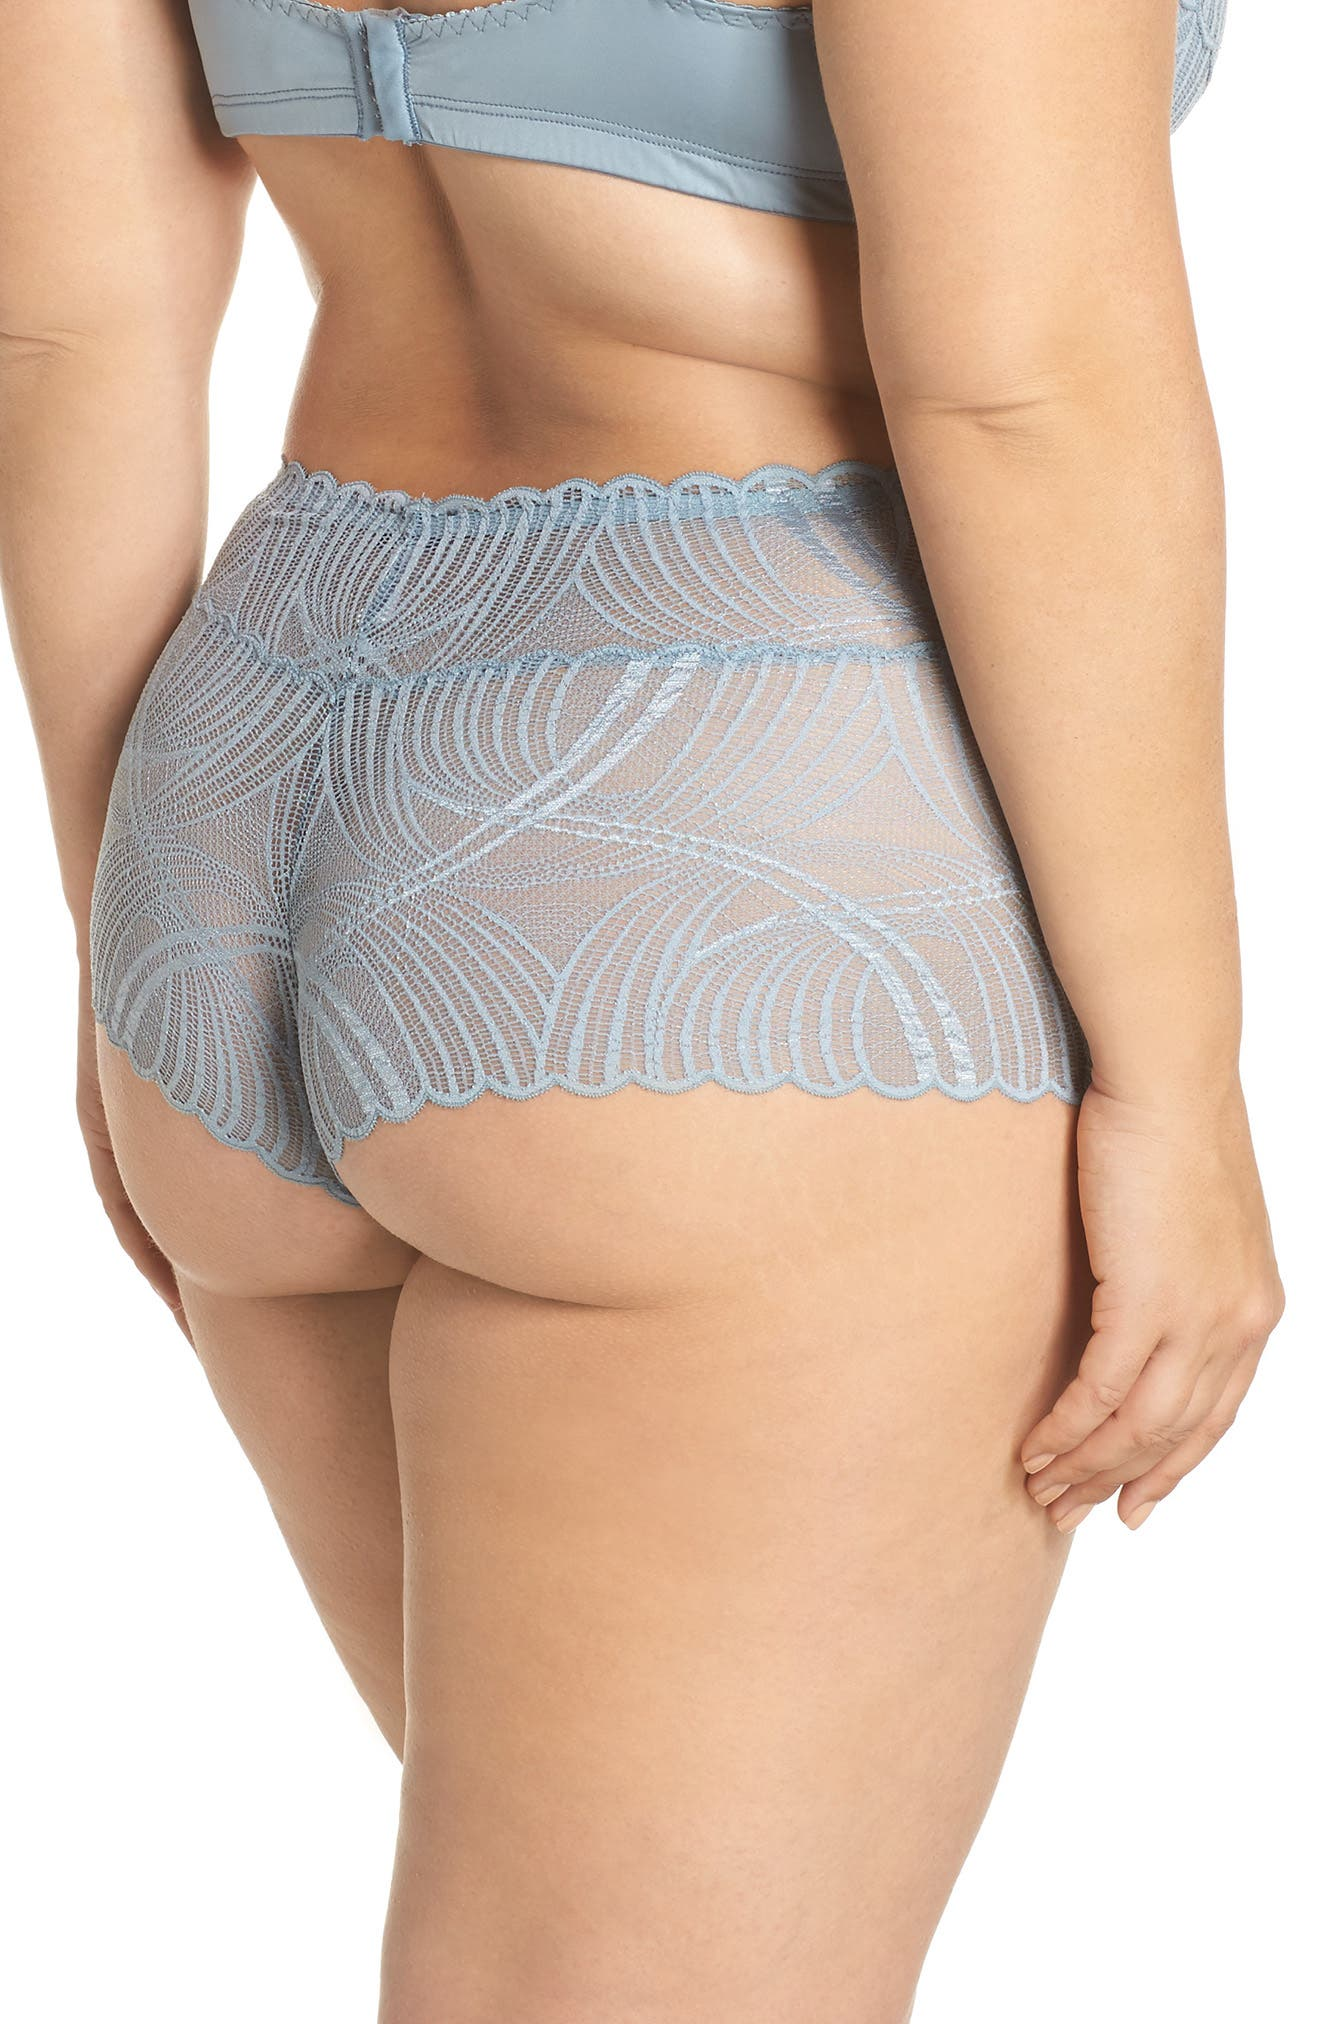 Minoa Naughtie Open Gusset Boyshorts,                             Alternate thumbnail 6, color,